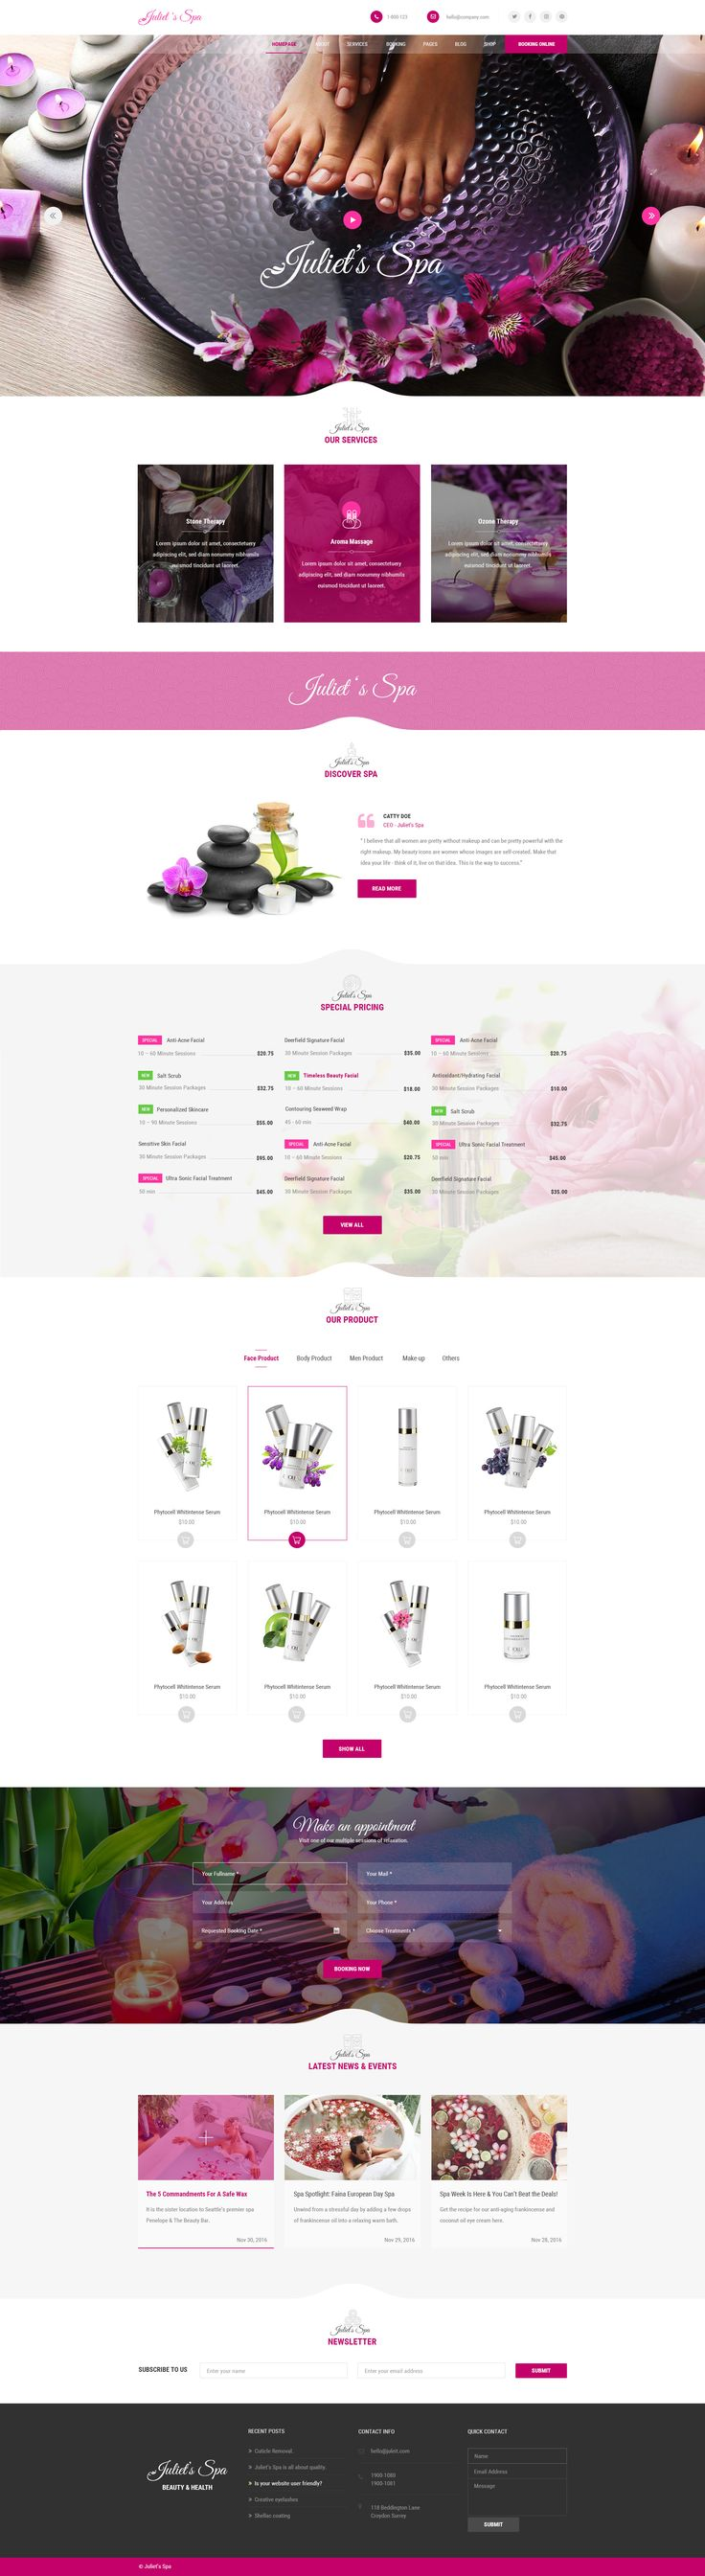 Juliet's Spa – PSD Template is the PSD with visually appealing and aesthetic design, it is an elegant and modern design style Template that can help to build an awesome site Spa, Health and Beauty ...